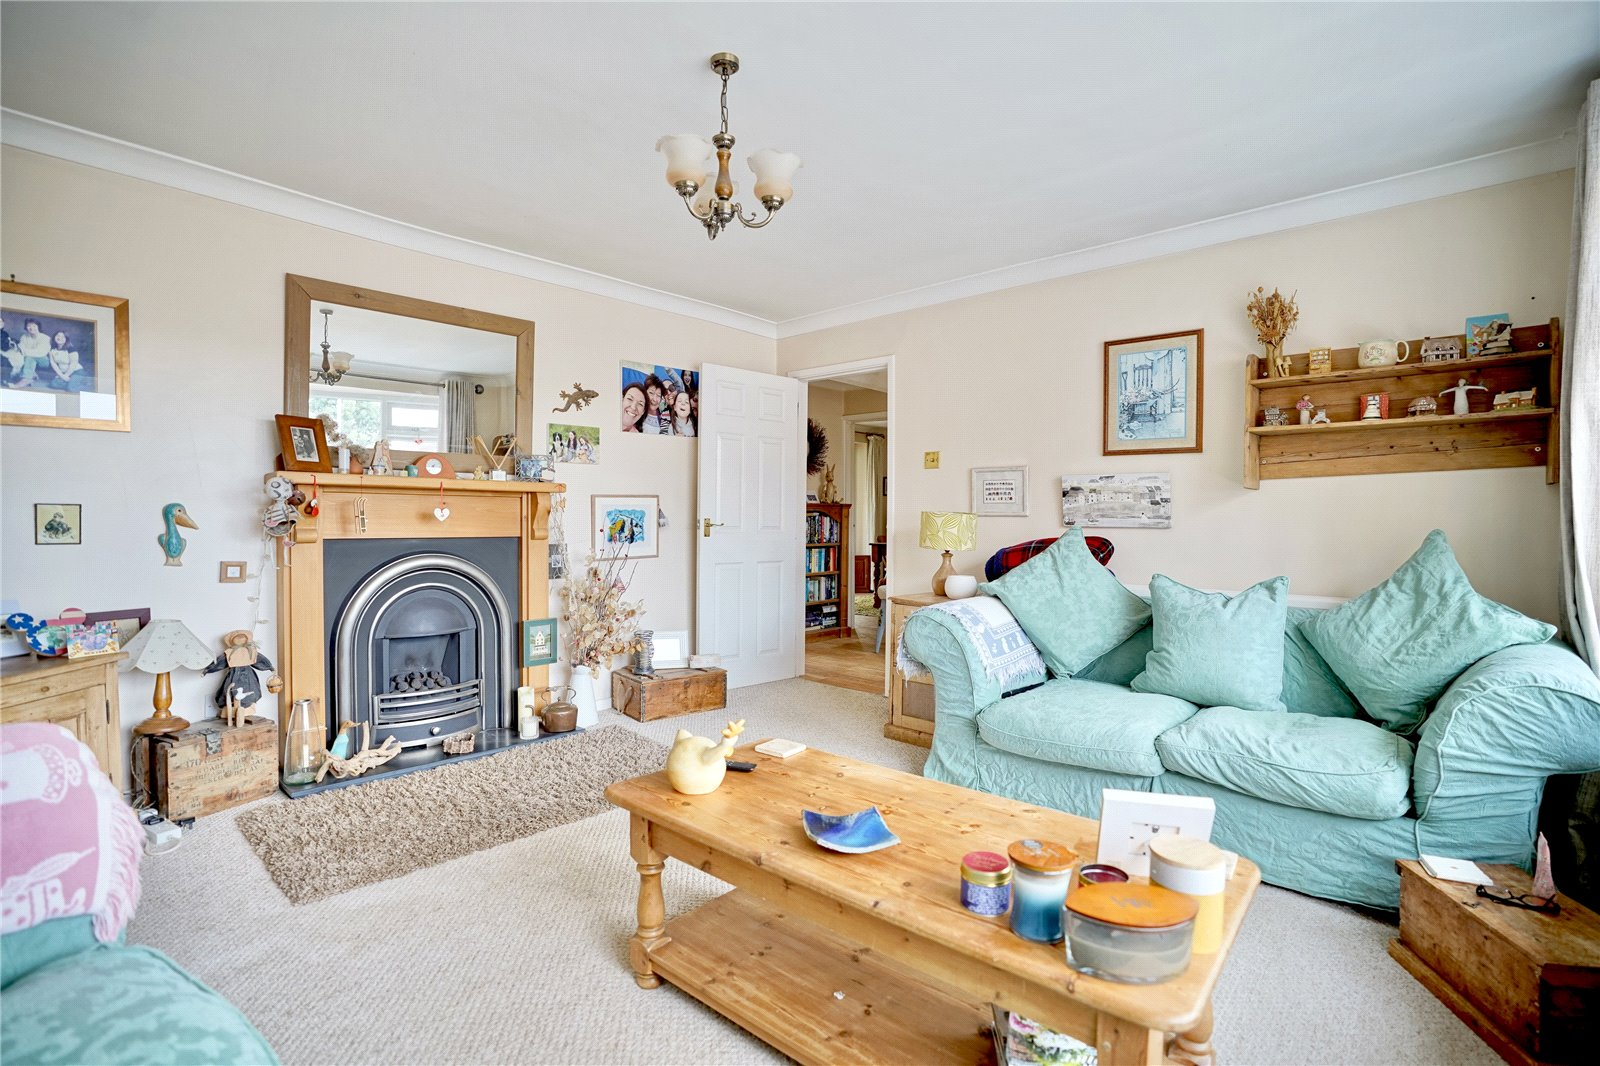 3 bed house for sale in Hemingford Grey, PE28 9BS  - Property Image 2